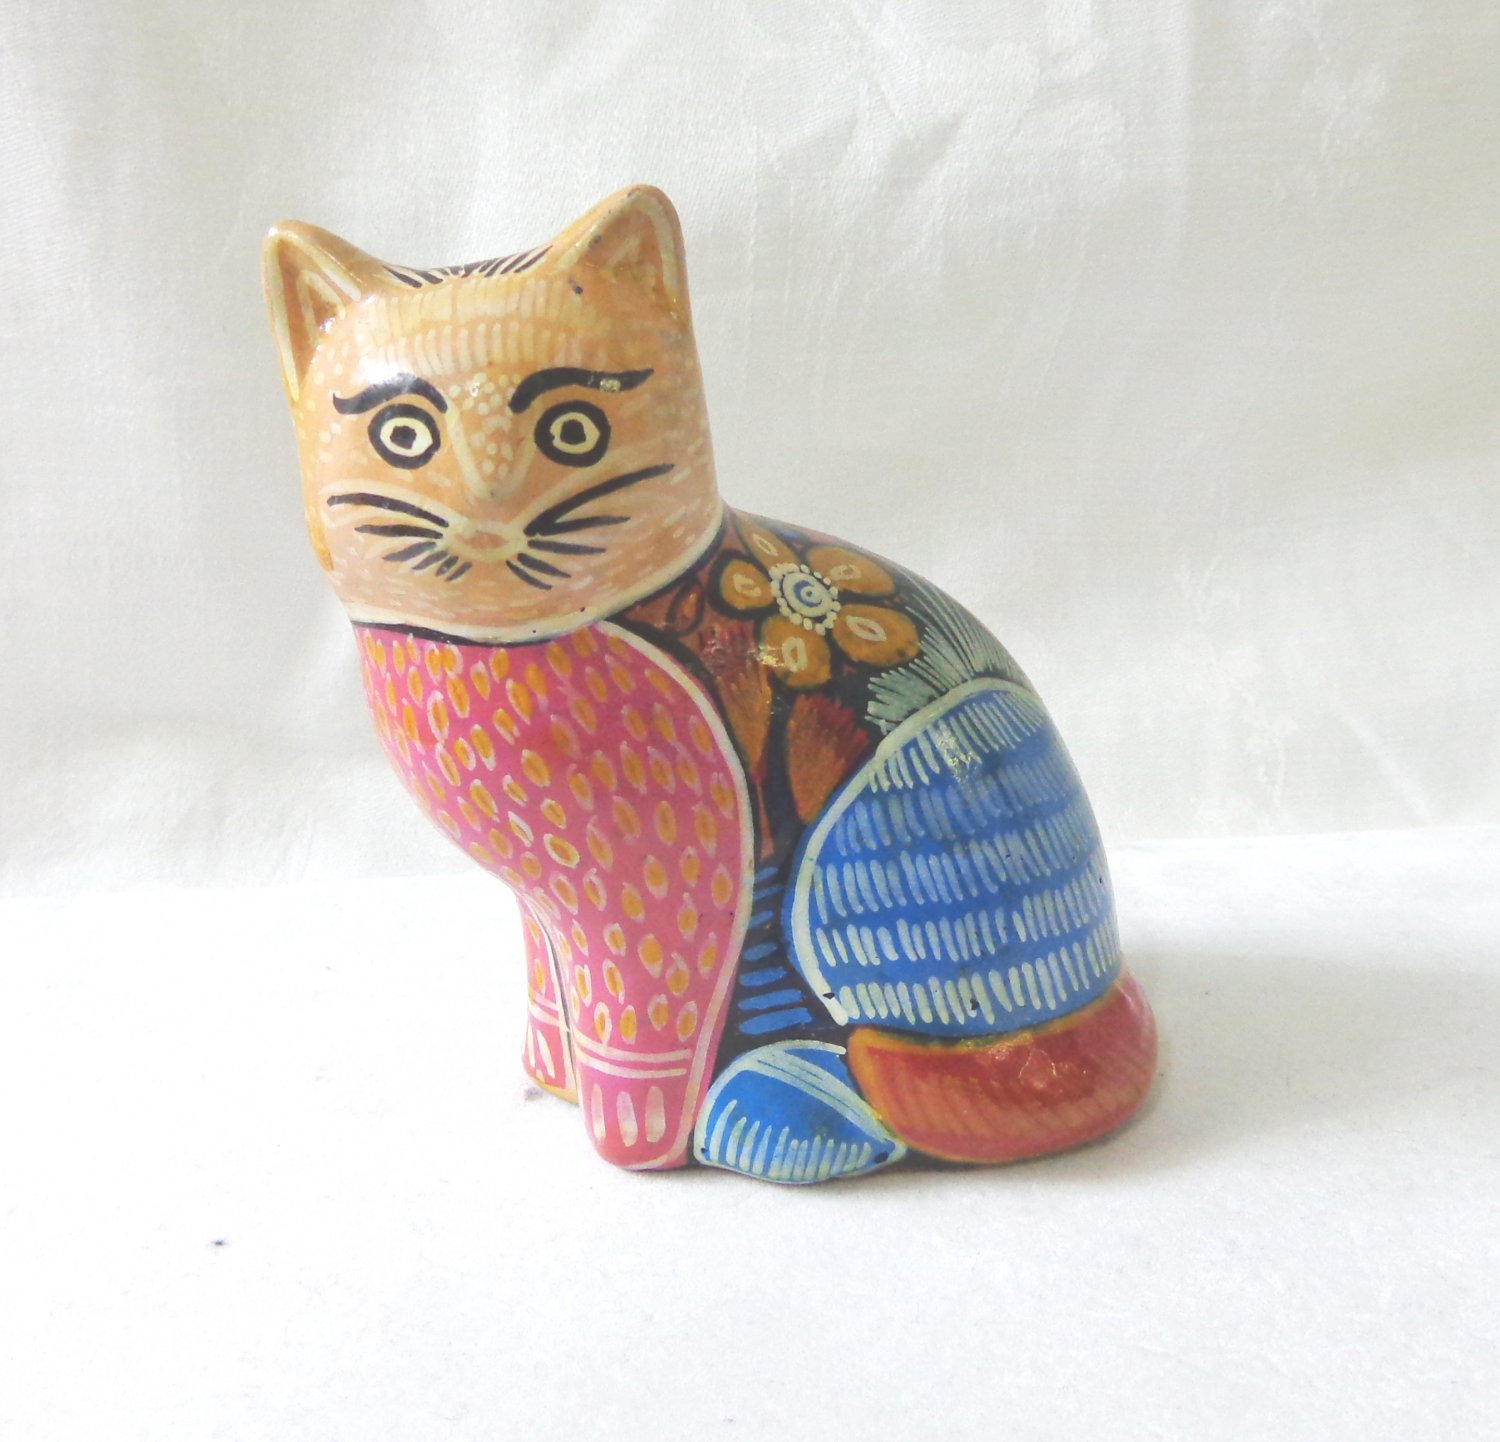 Primitive hand painted ceramic cat figurine bright colors patterns vintage vintage cm1485